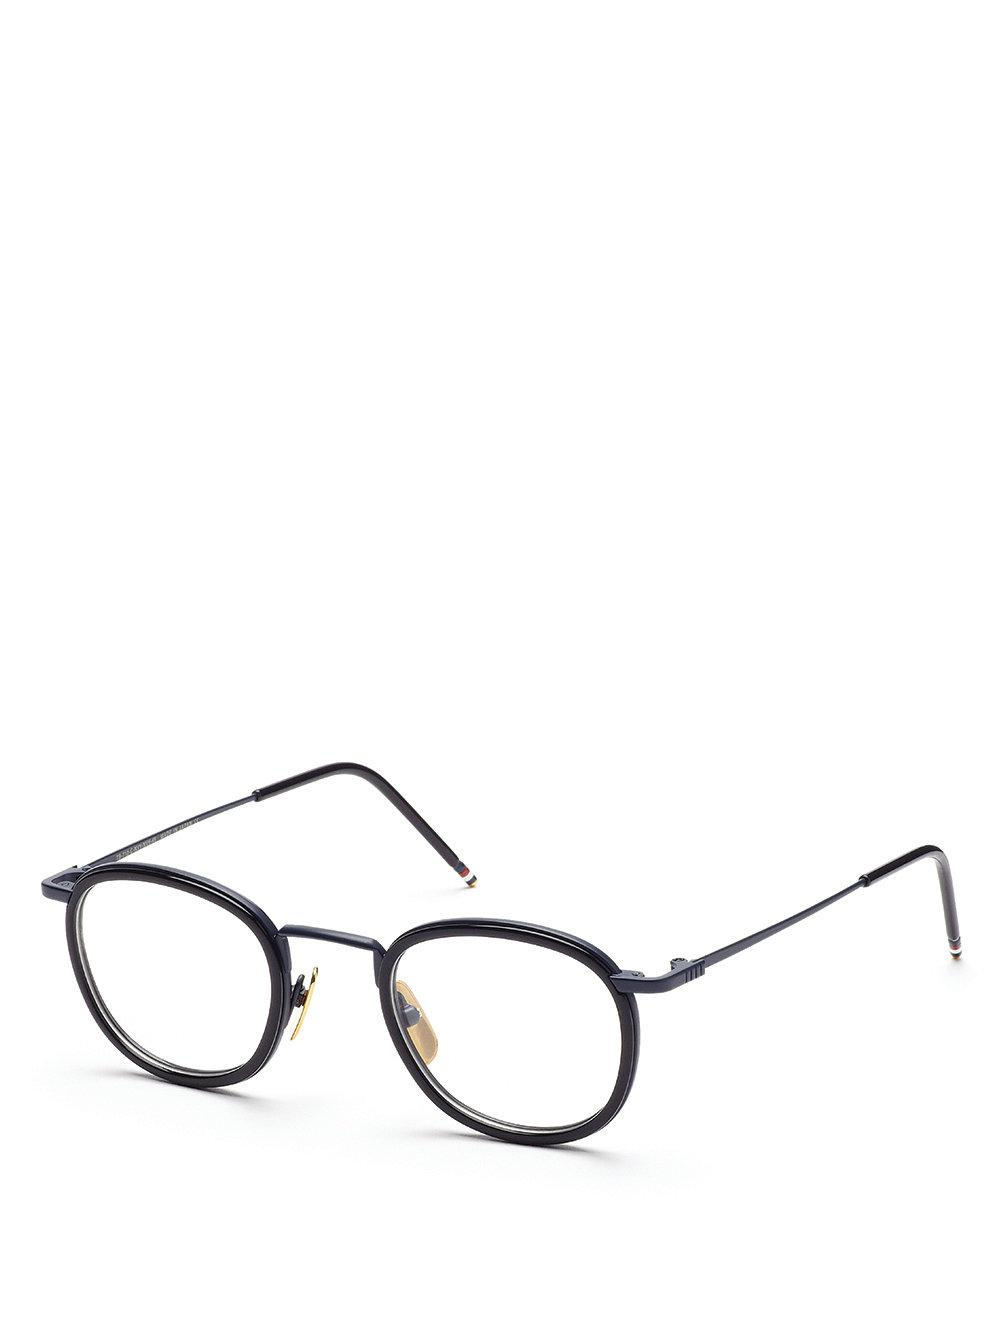 0b6cf873086 Thom Browne Navy   18k Gold Glasses With Clip-on Sun Lens in Blue - Lyst